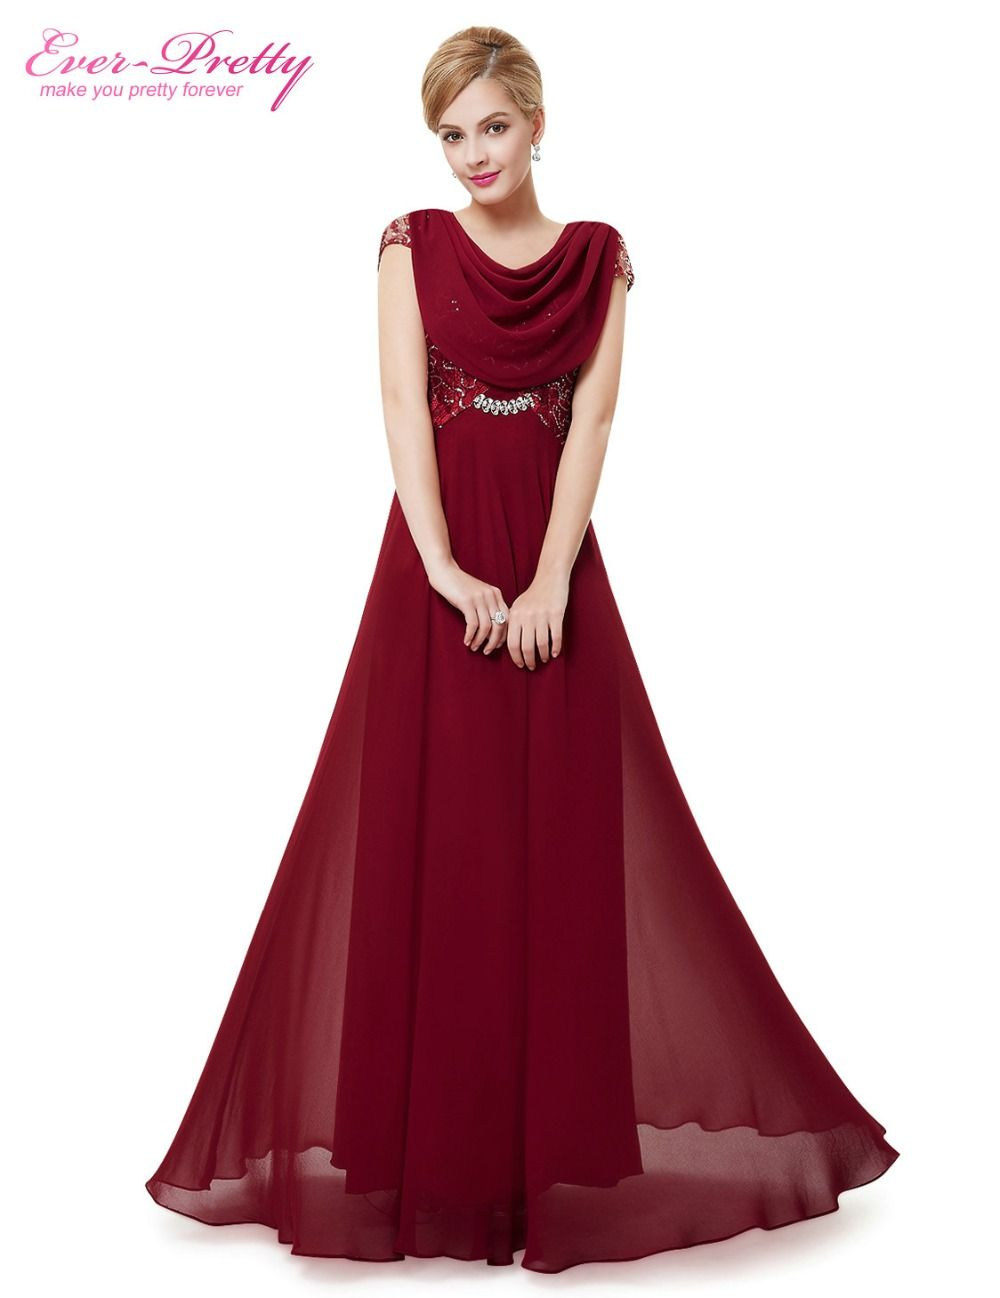 Halter vneck elegant fashion prom long party dress